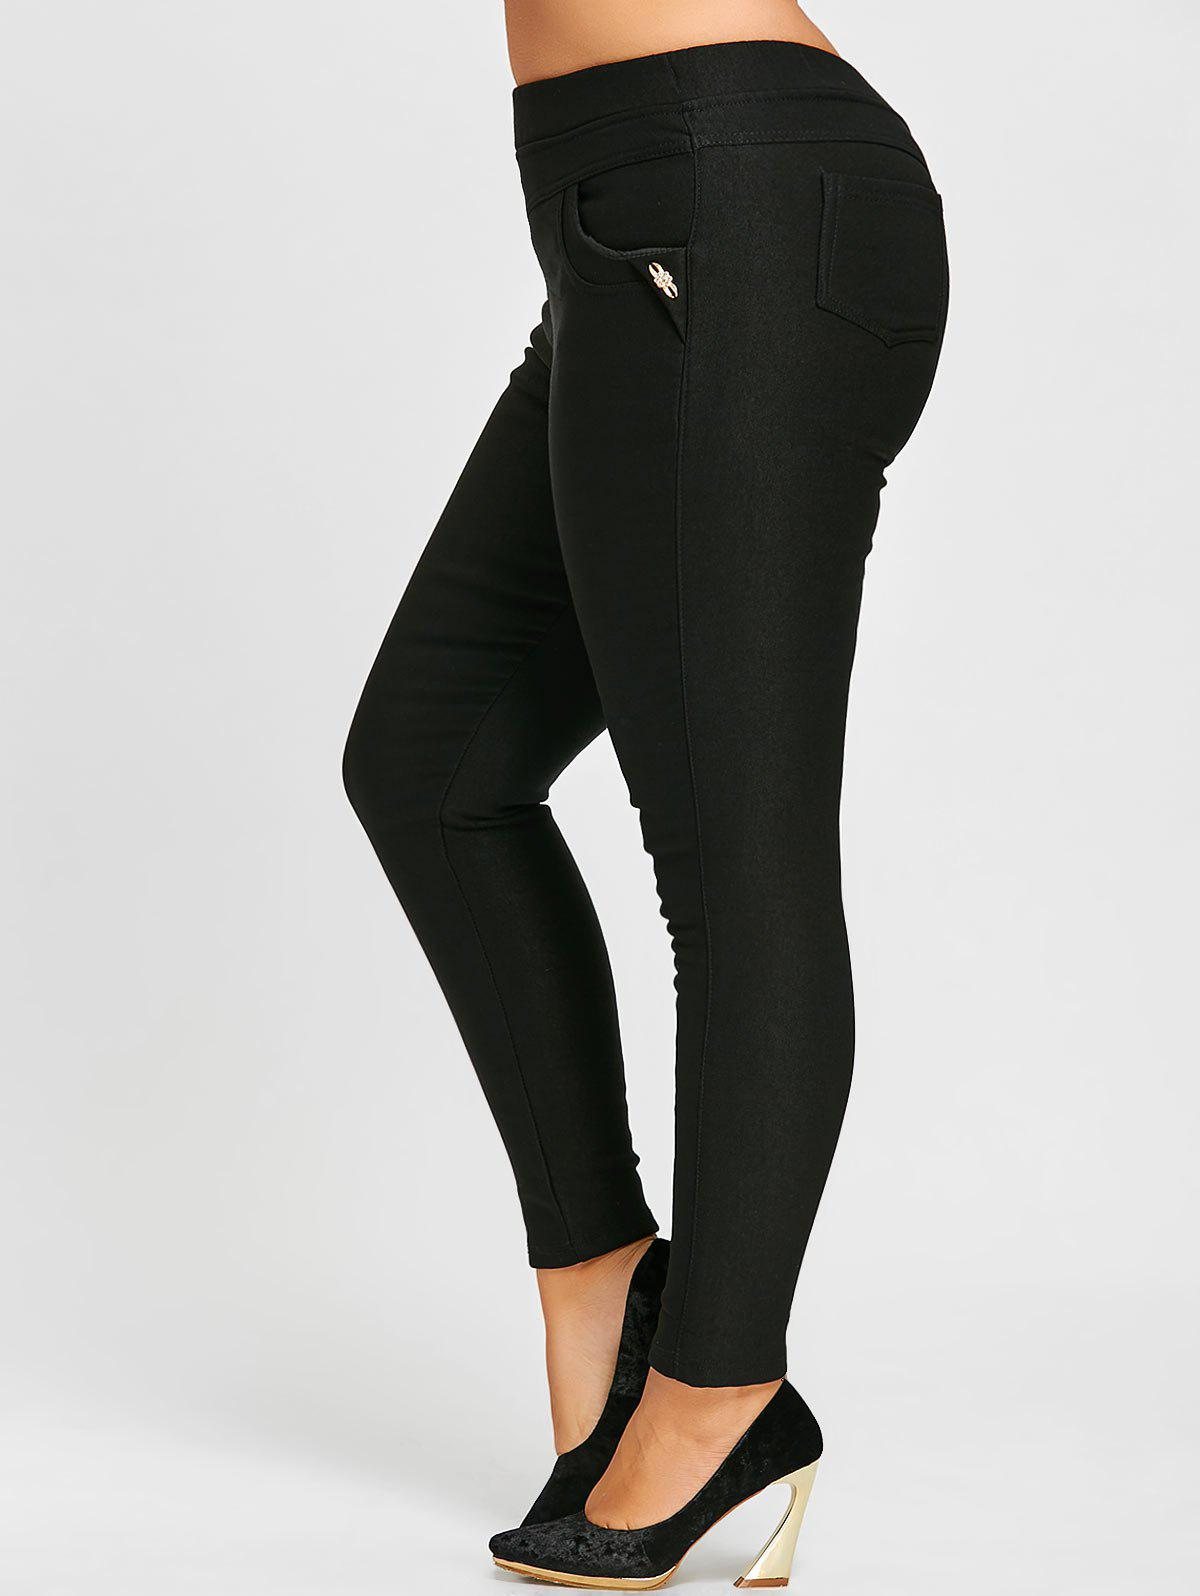 Fleece Lined Plus Size High Waist Tight PantsWOMEN<br><br>Size: 6XL; Color: BLACK; Style: Fashion; Length: Ninth; Material: Polyester; Fit Type: Skinny; Waist Type: High; Closure Type: Elastic Waist; Pattern Type: Solid; Embellishment: Pockets; Pant Style: Pencil Pants; Elasticity: Elastic; Weight: 0.6300kg; Package Contents: 1 x Pants;